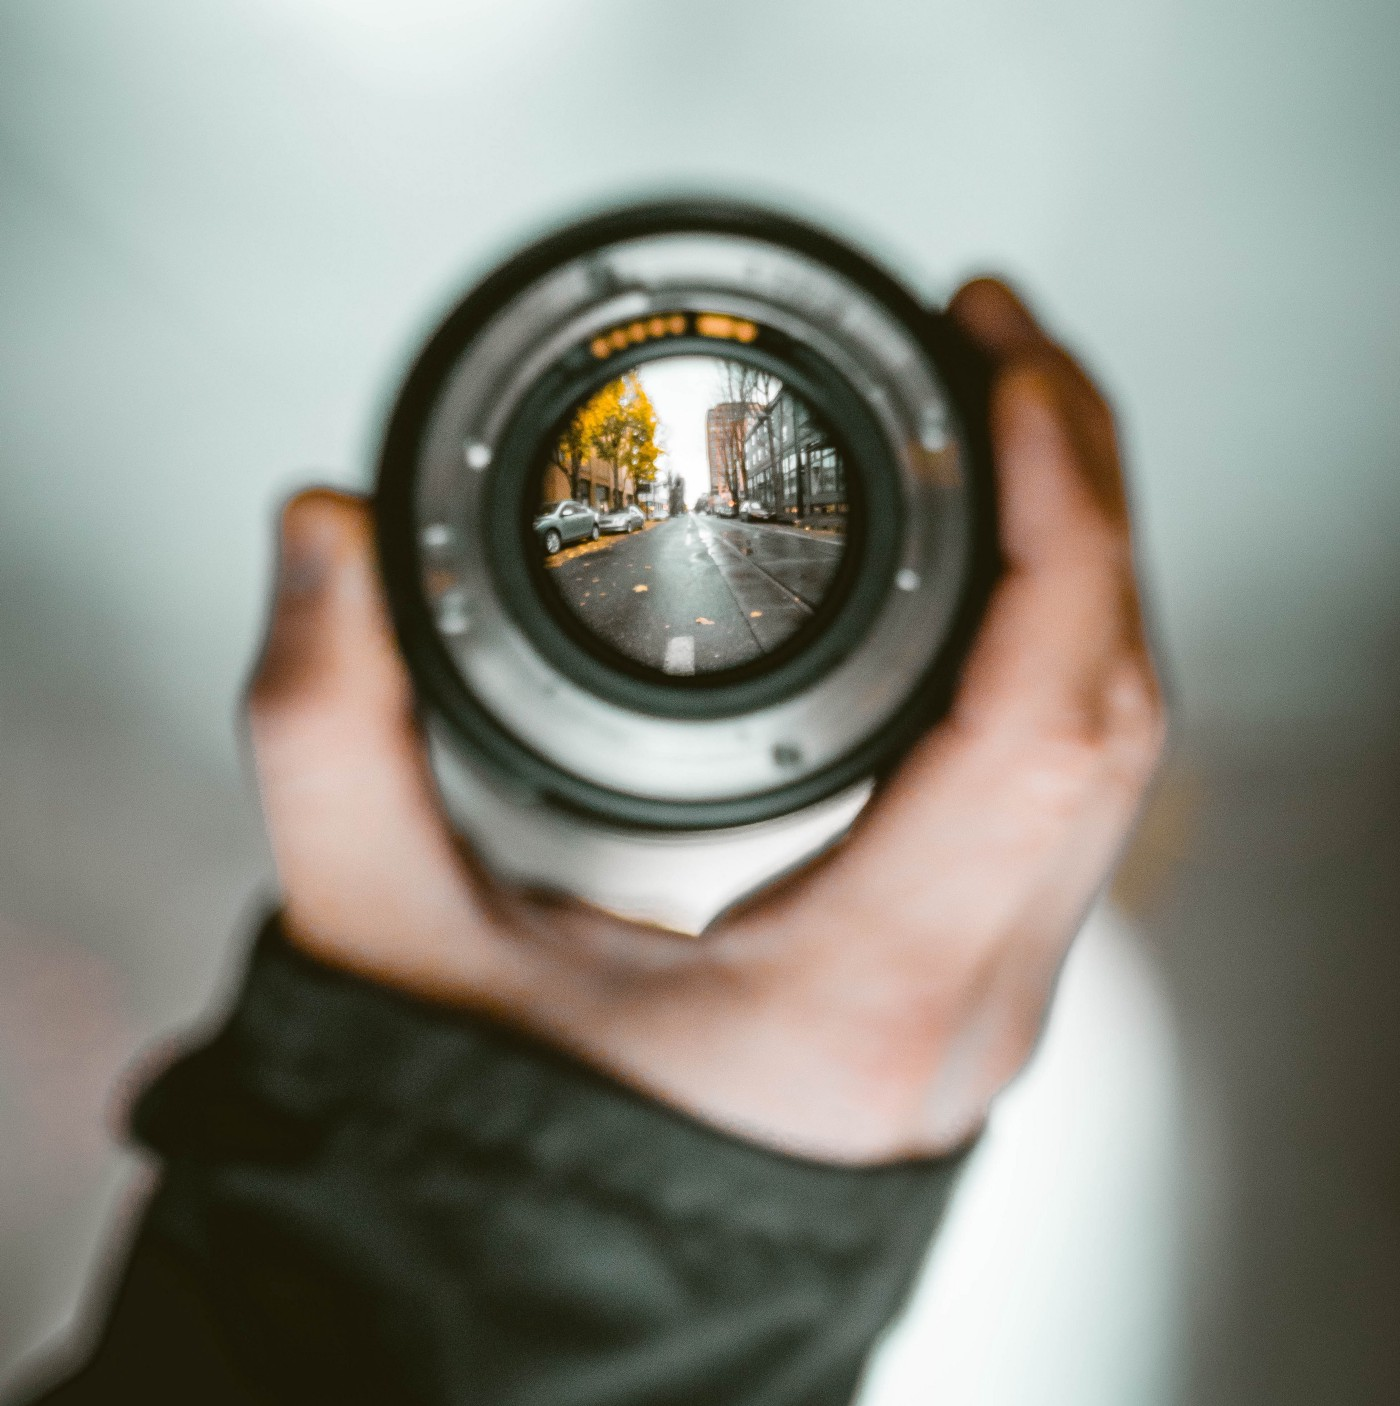 A hand holds up a lens that brings the surrounding street and cityscape into focus.